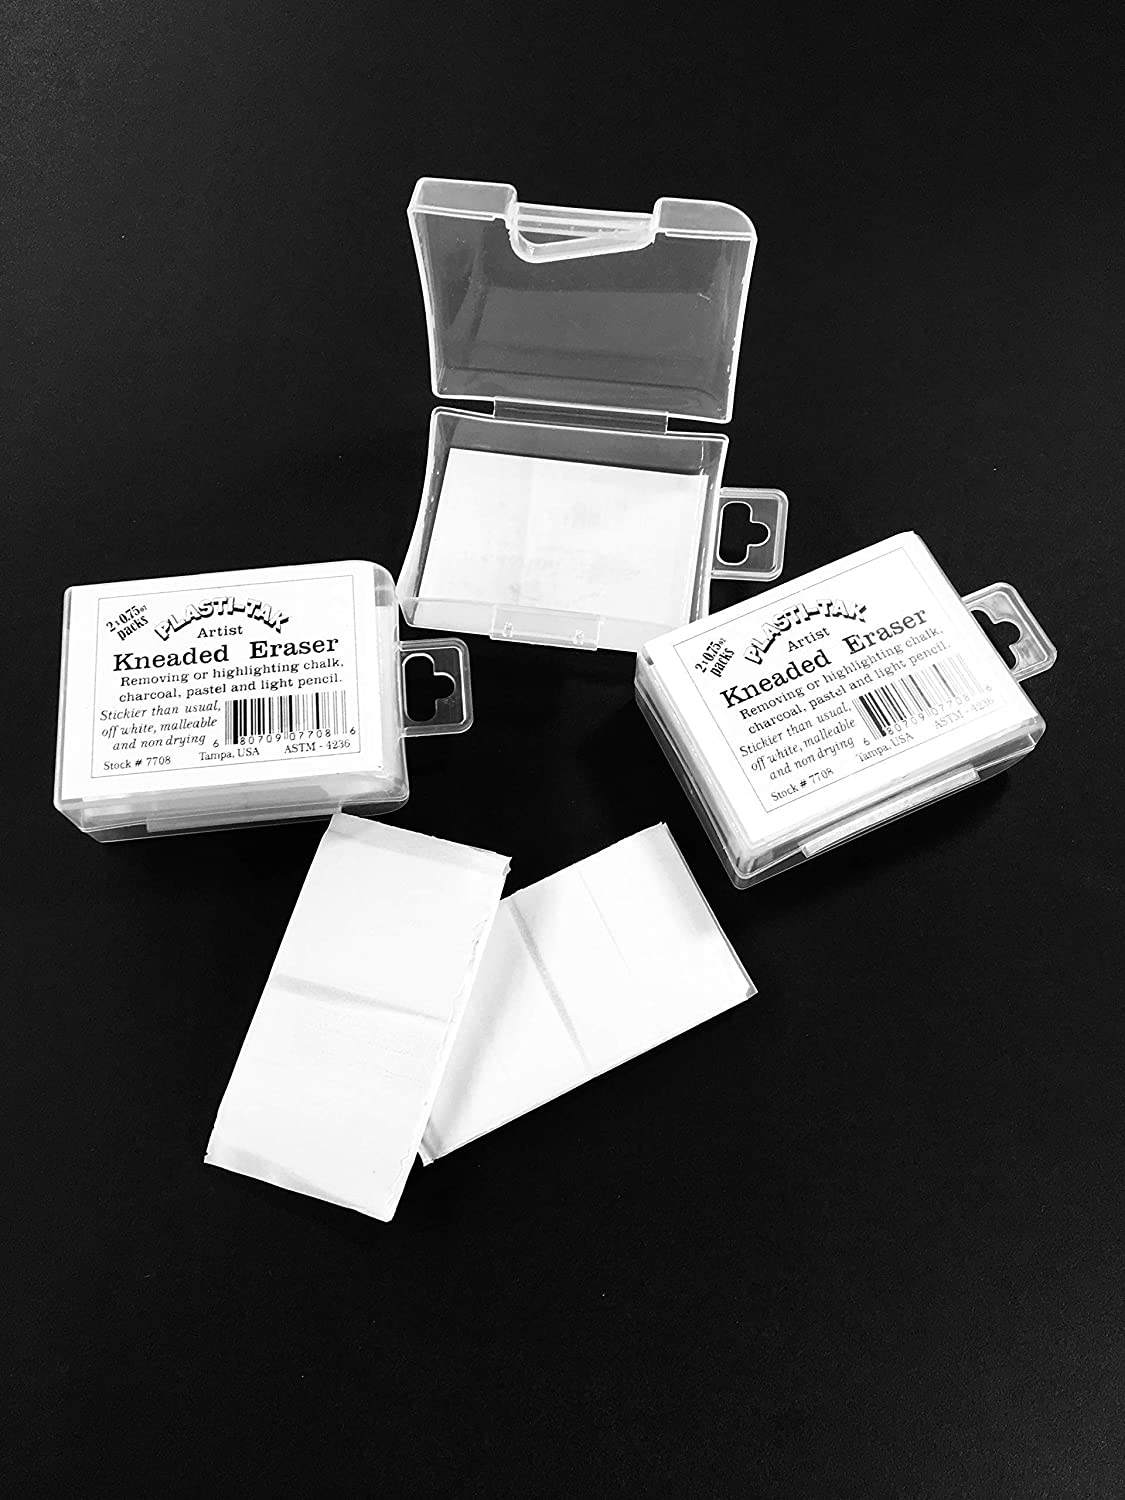 2 x 0.75 oz per Box Blend 3 pk Kneaded Eraser Smooth Shade Correct and Brighten Your Sketches and Drawings